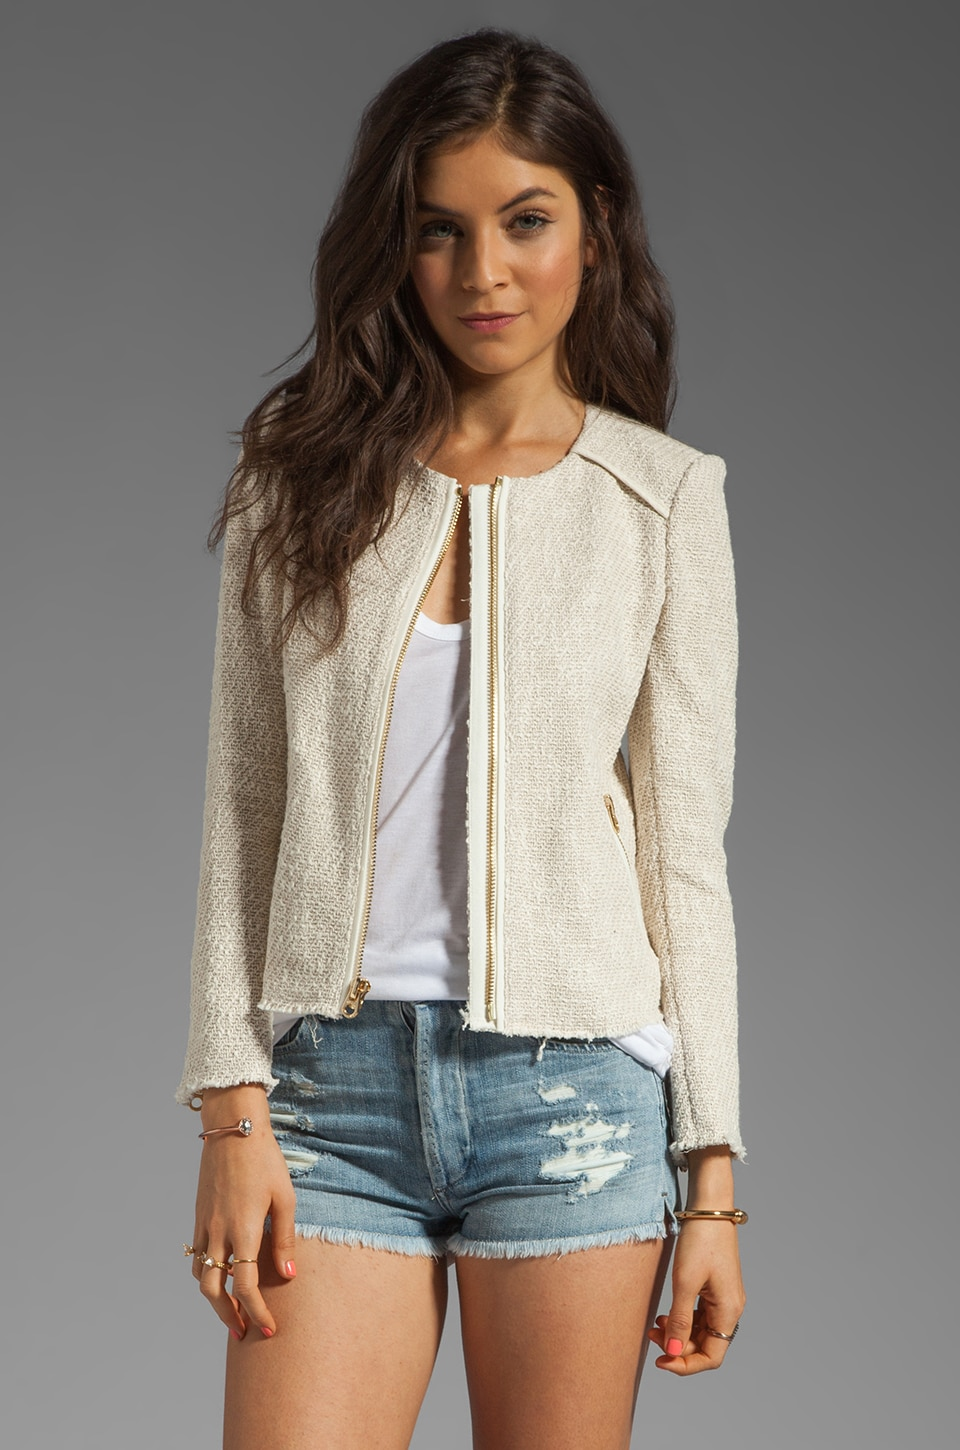 Juicy Couture Textured Novelty Jacket in Pale Bamboo